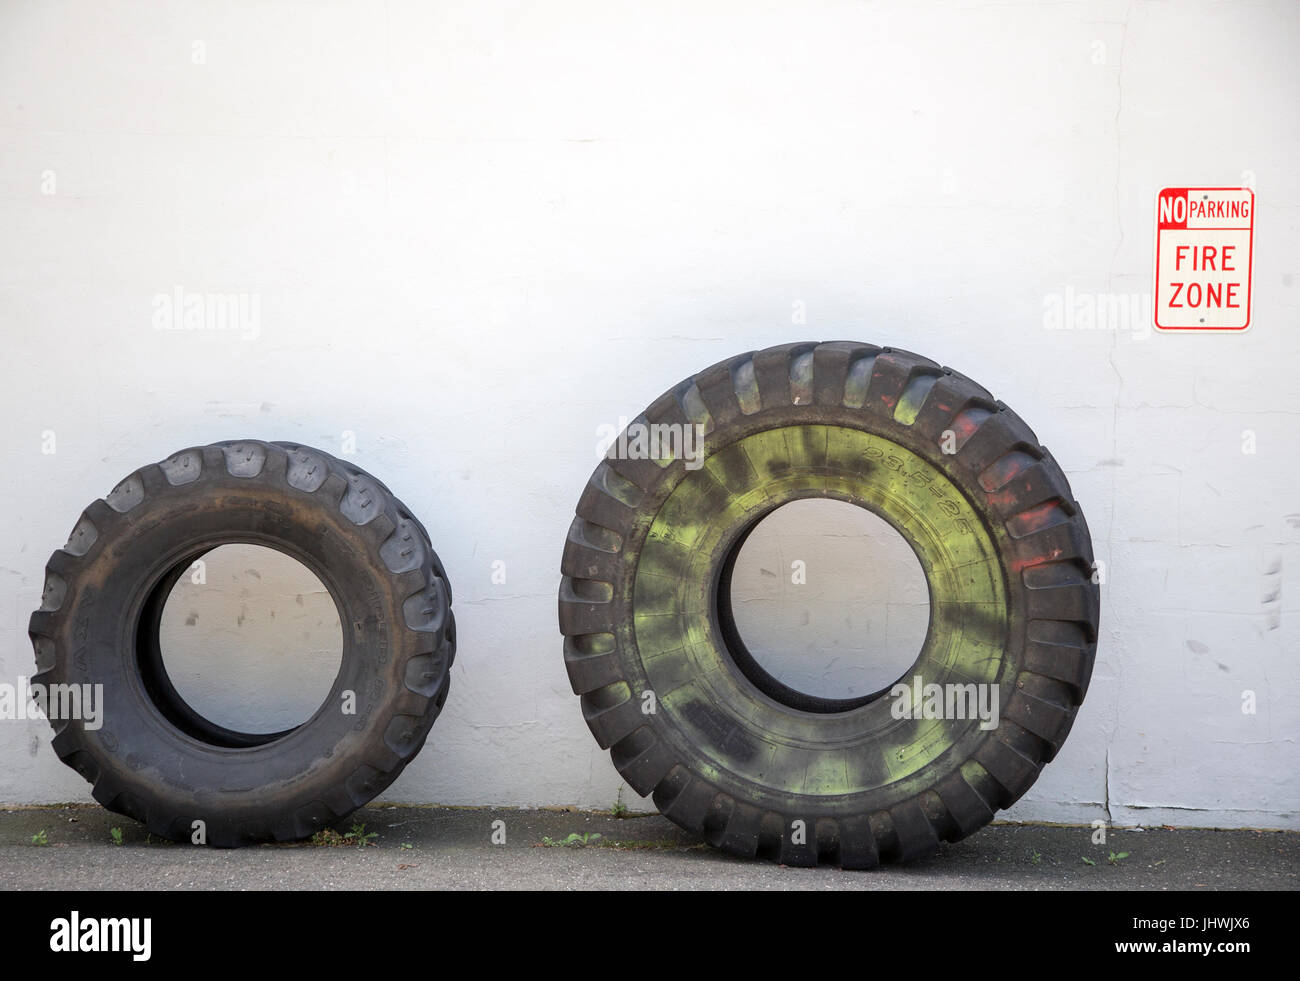 Tires in front of a Crossfit fitness center in New Jersey - Stock Image